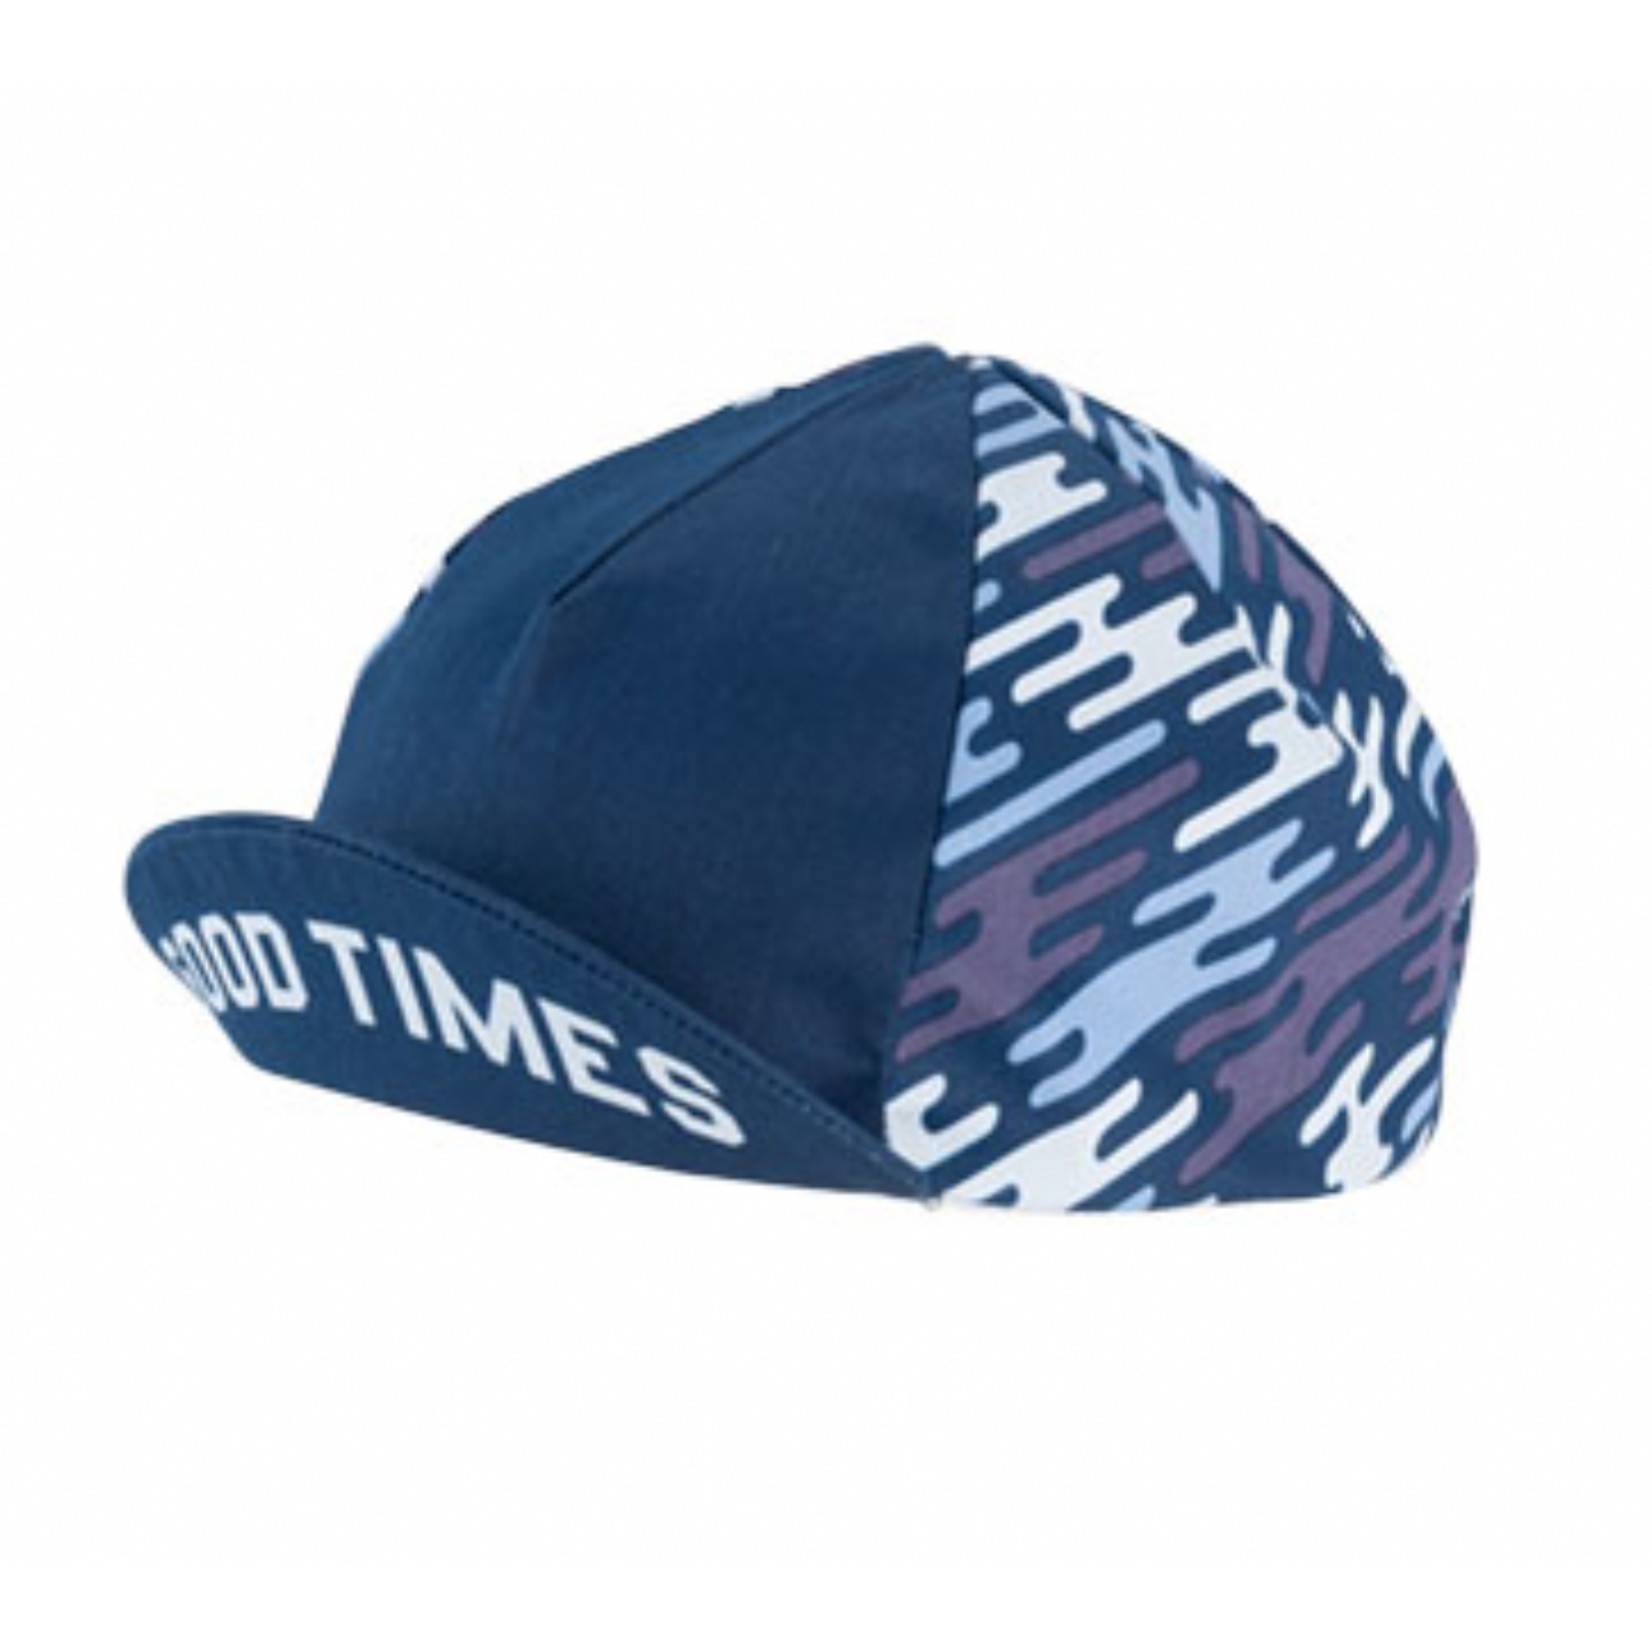 All-City All-City Flow Motion Cycling Cap - Blue, One Size